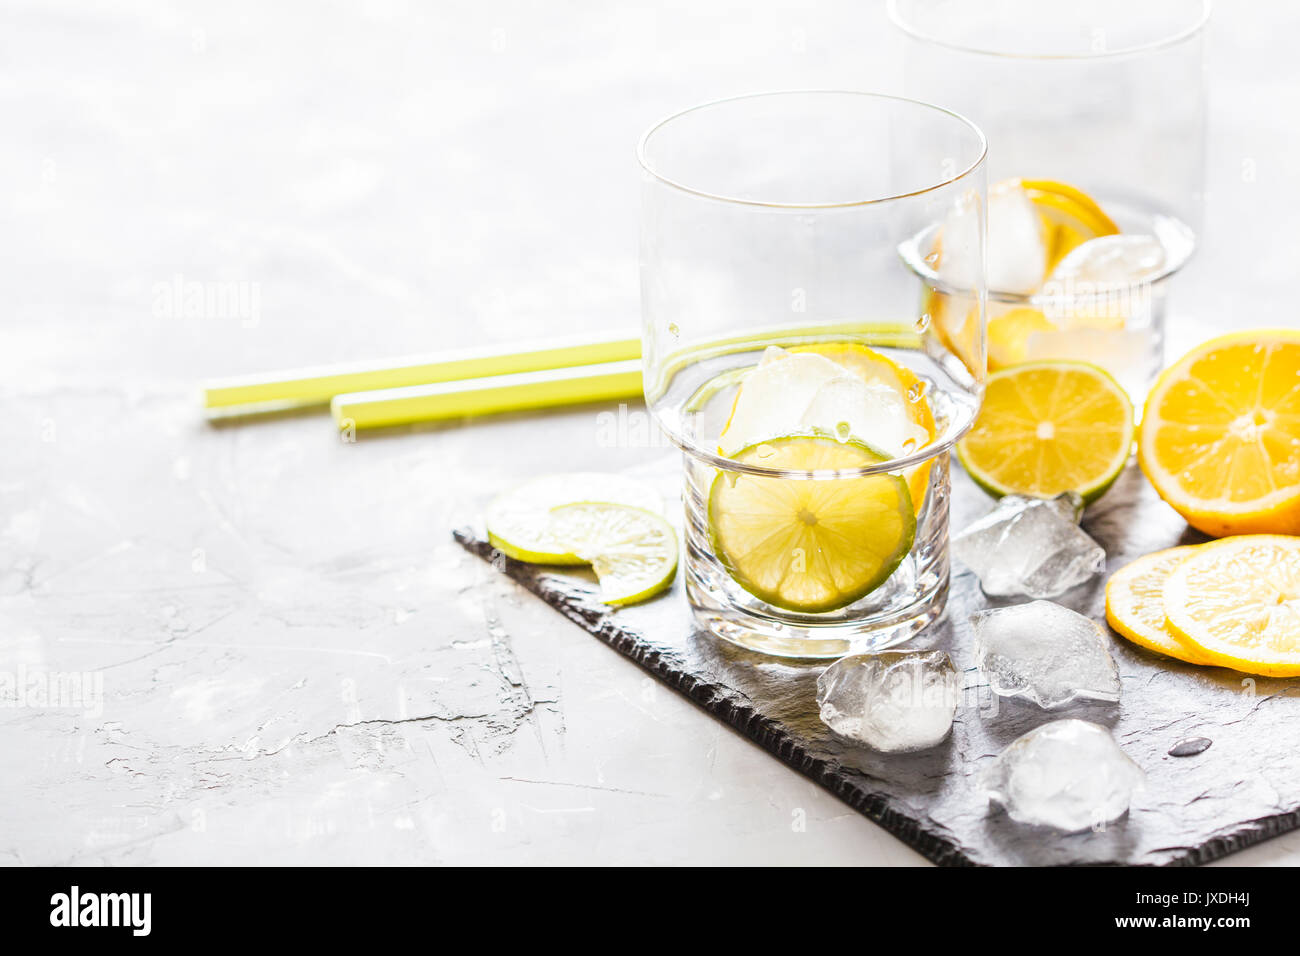 Empty glasses on a slate for drinks. - Stock Image